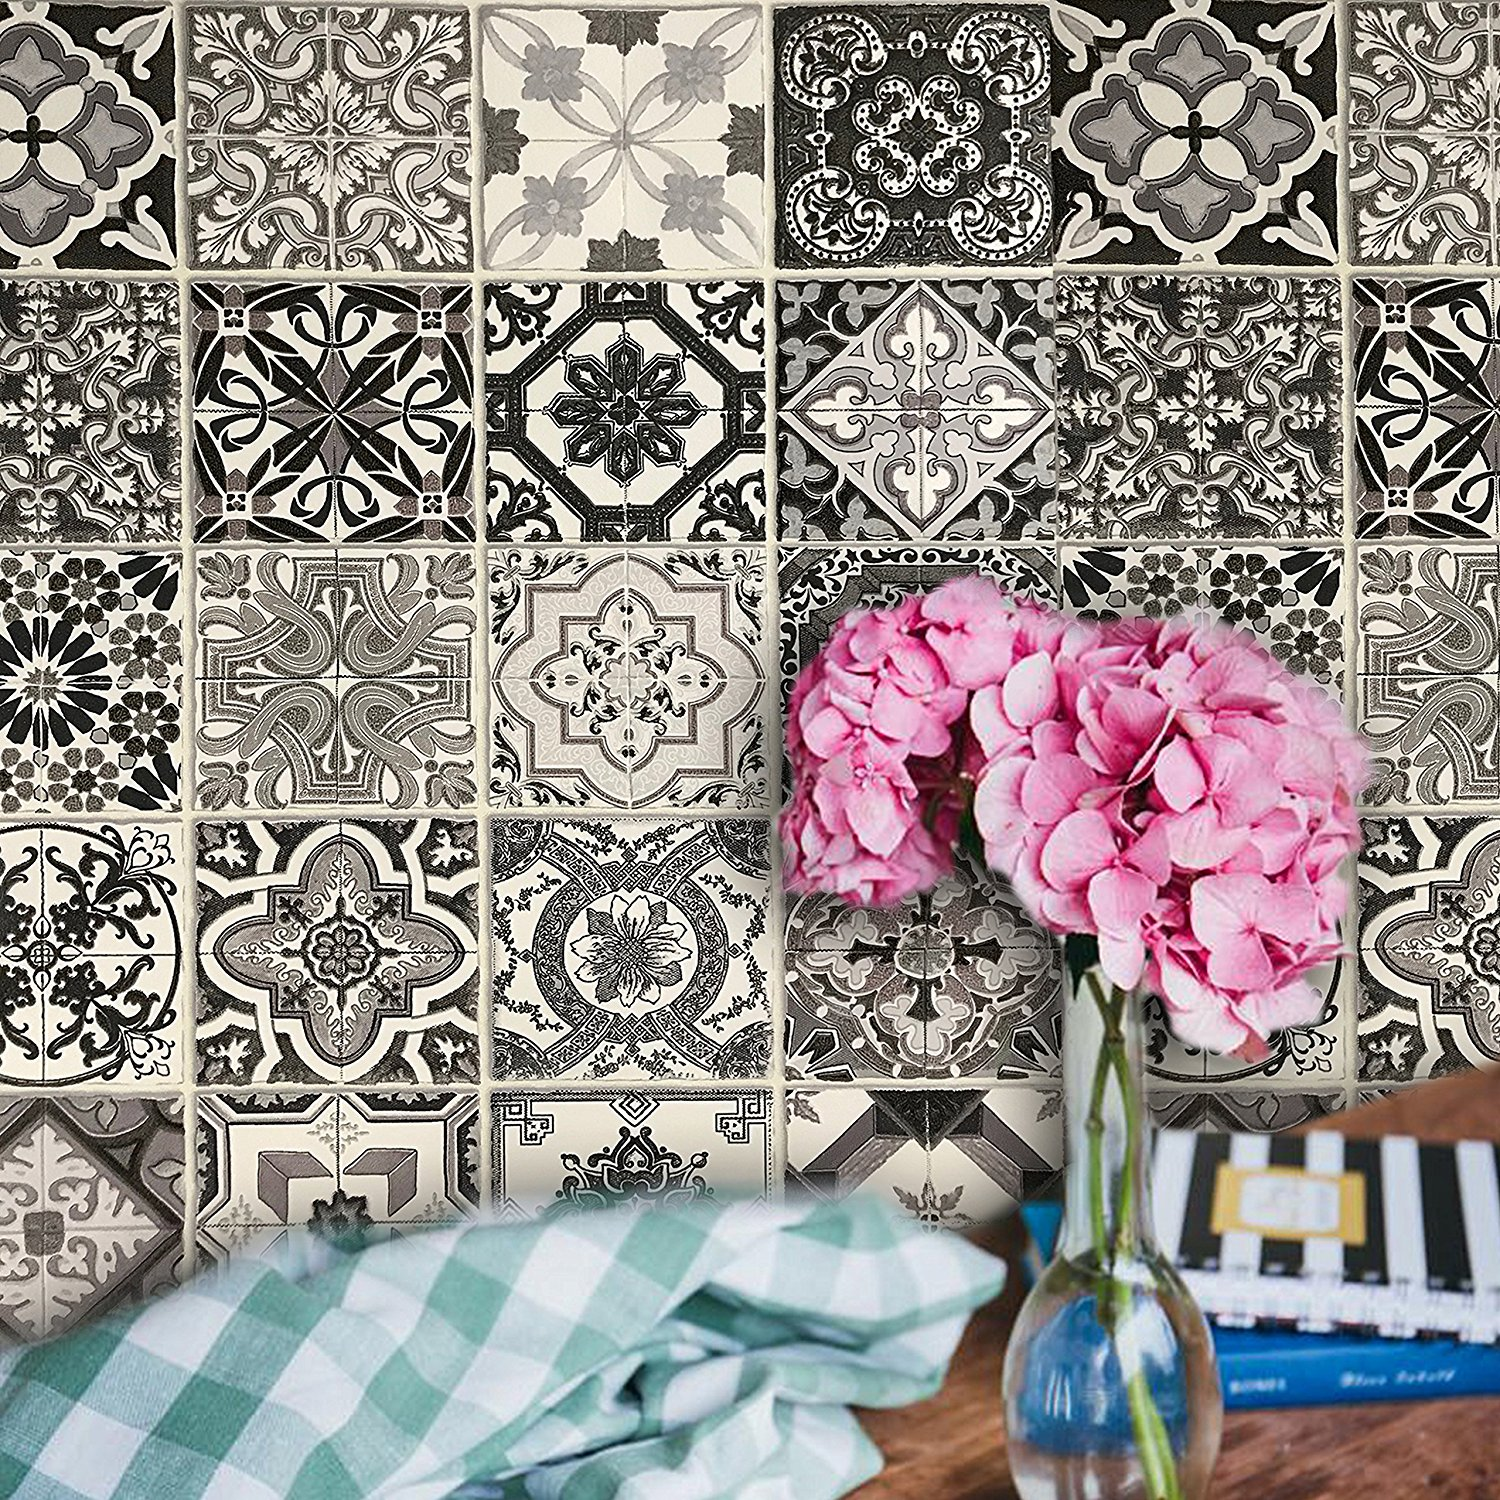 Slavyanski European vinyl wallpaper textured faux square tiles mosaic modern wallcoverings double rolls boho patterned coverings textures wall decor 3D modern vintage retro pattern black & white gray